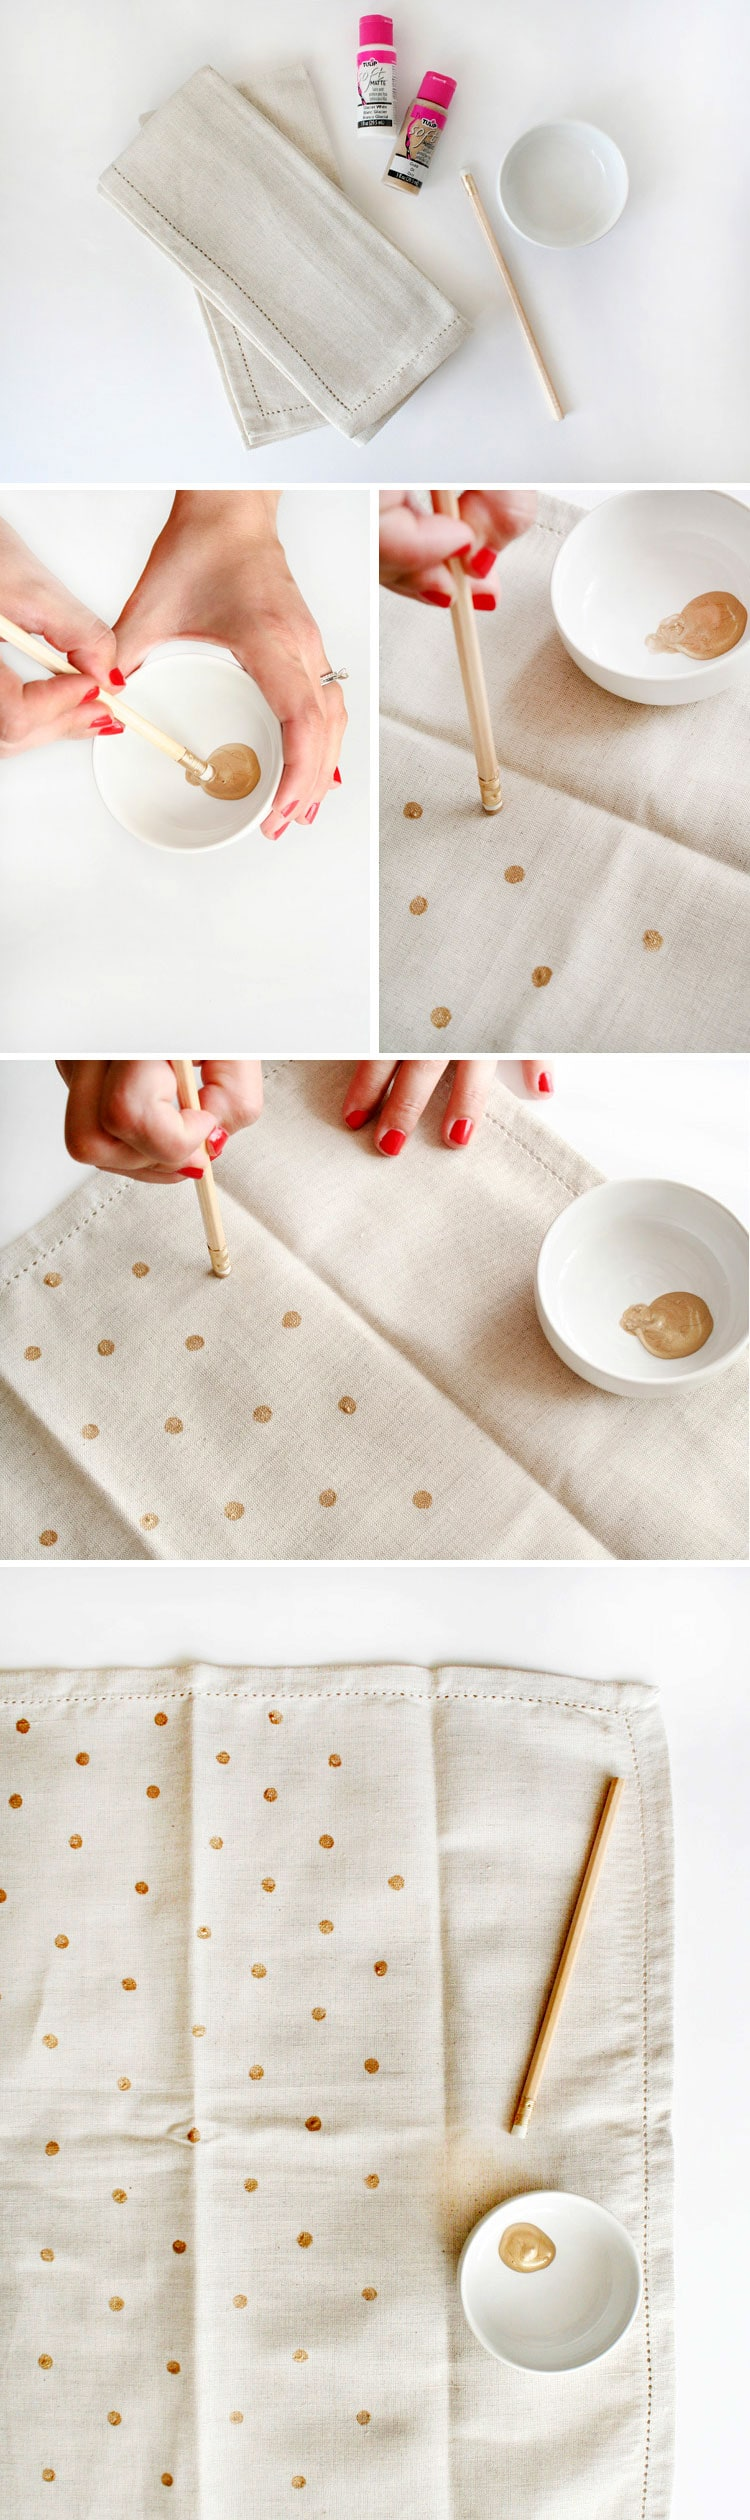 Polka dot napkin tutorial